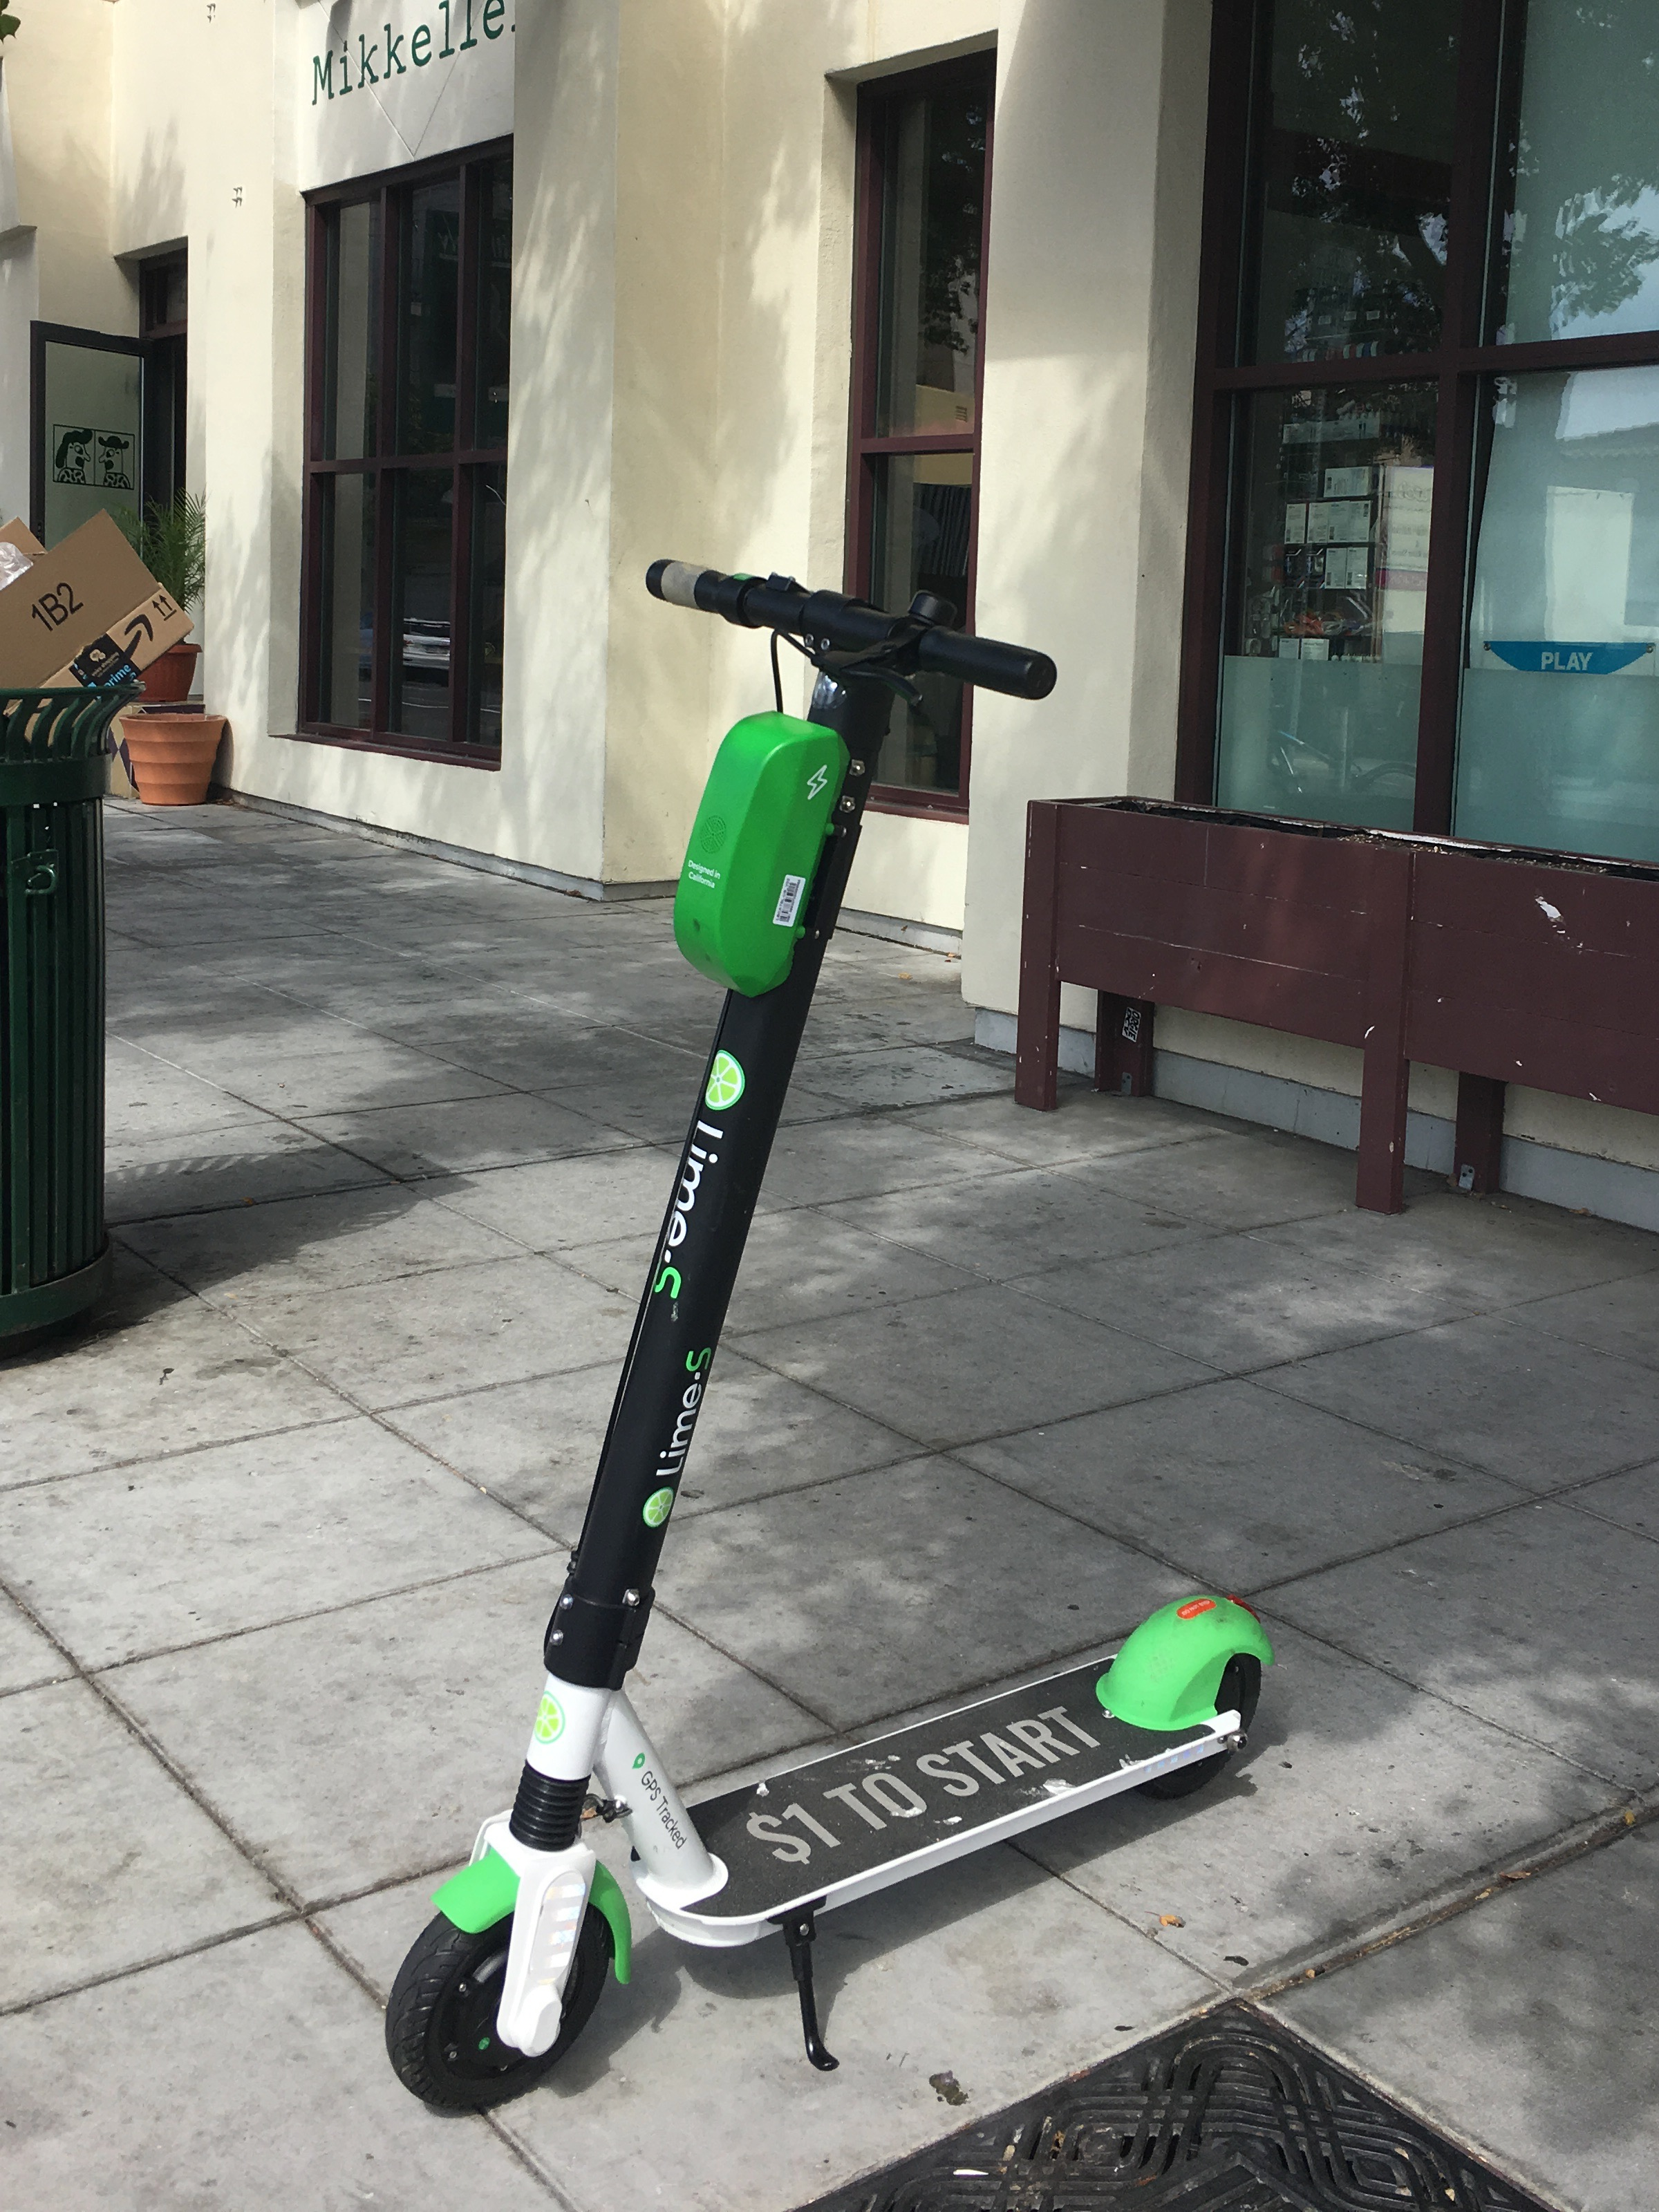 Lime Bike E-Scooter similar to the ones seen in Hoboken. Image captured by Malhal on September 28, 2018 sourced from Wikimedia Commons.